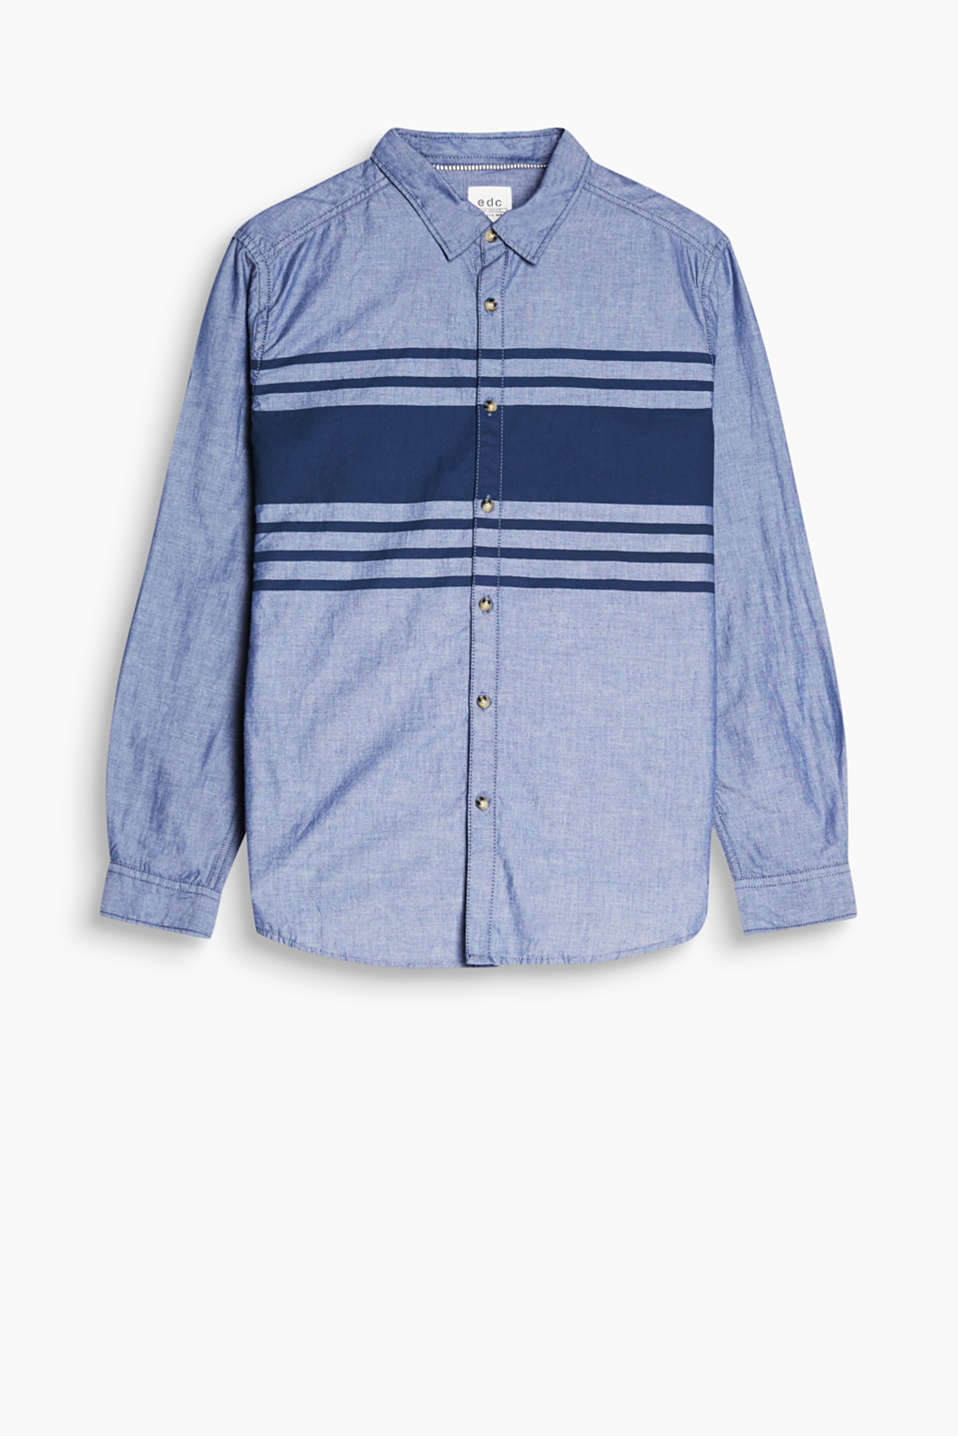 Bold painted stripes and cotton-chambray – a casual highlight piece!